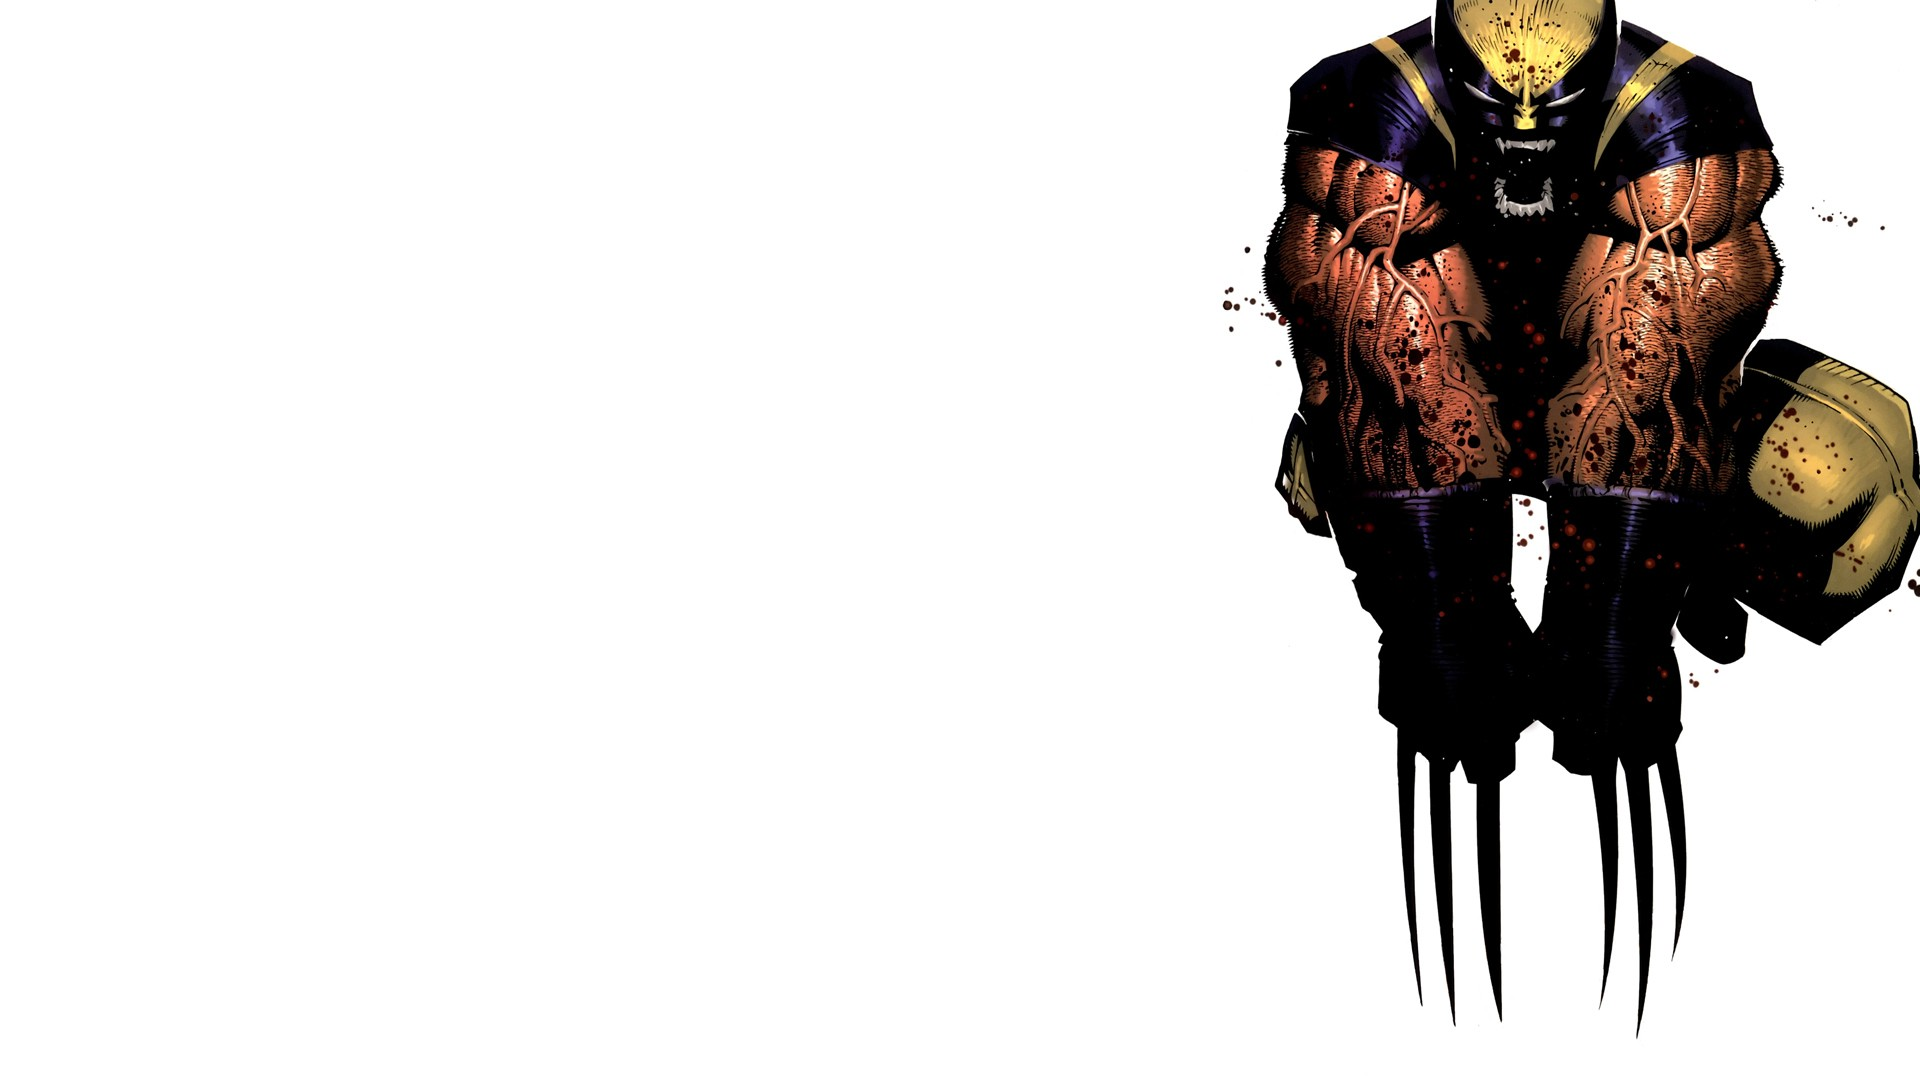 Wolverine Backgrounds Twitter Myspace Backgrounds 1920x1080